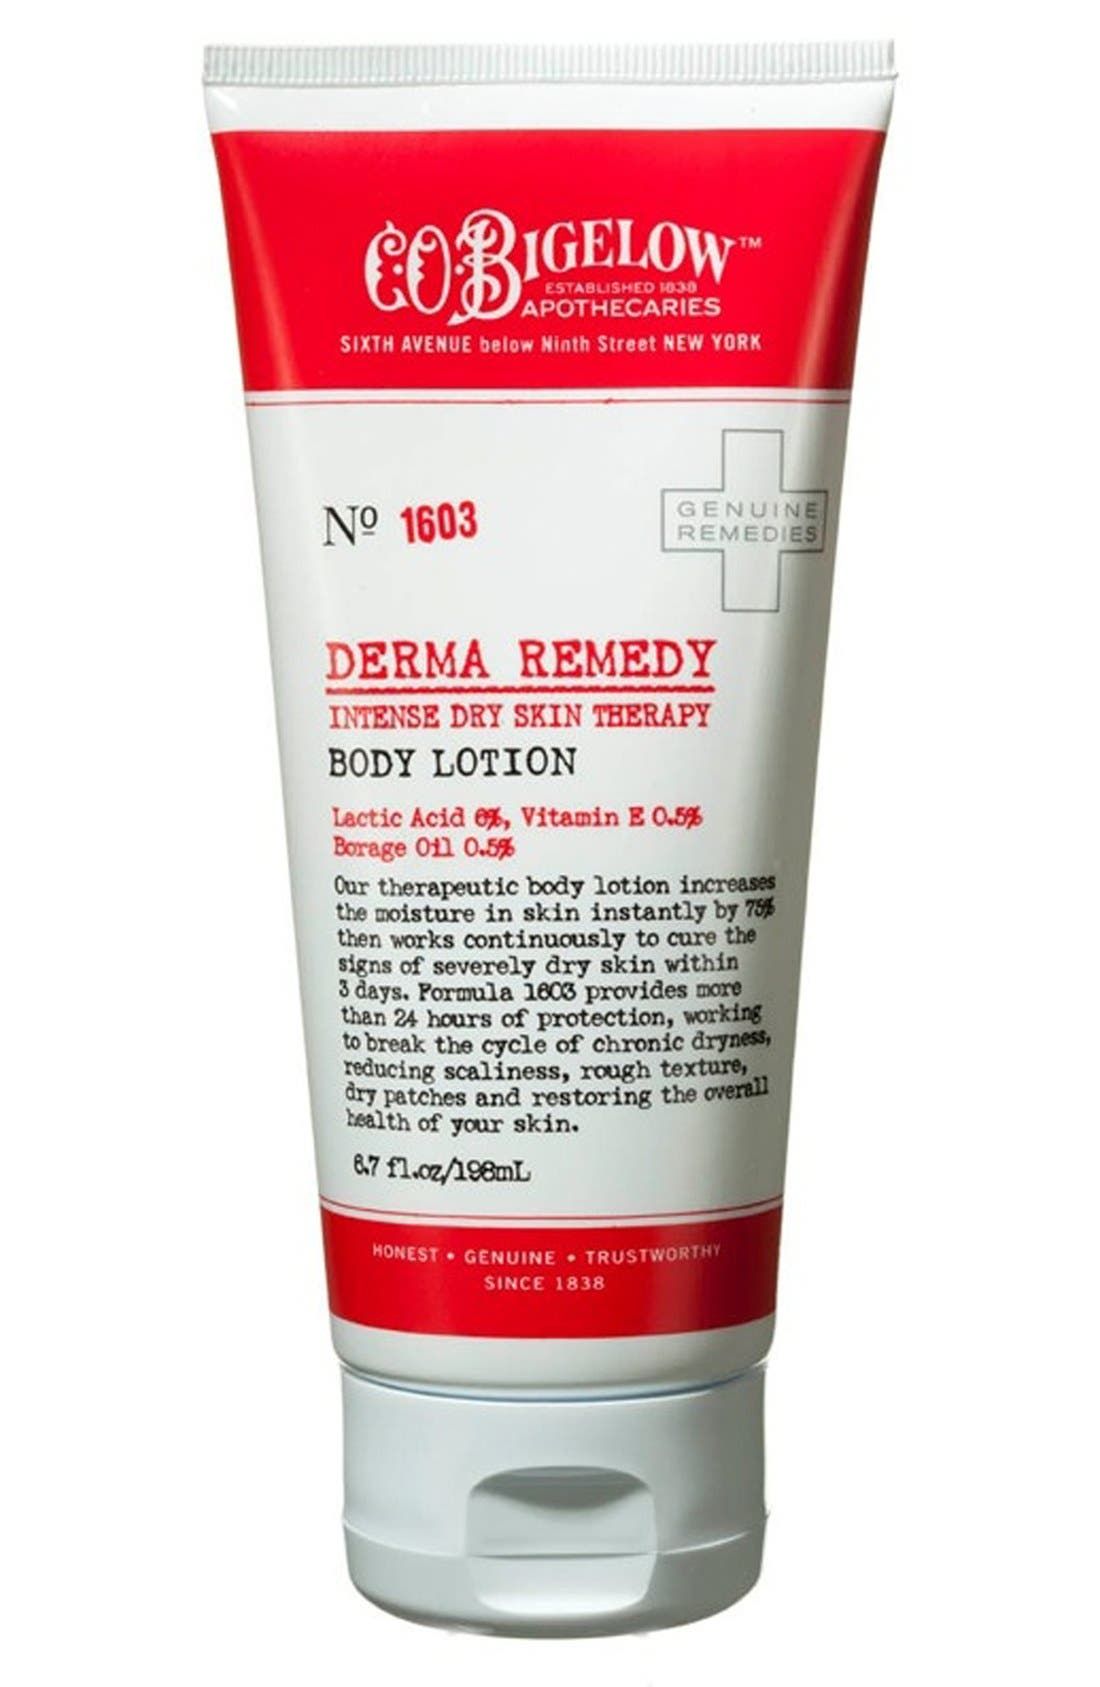 C.O. Bigelow® Derma Remedy Body Lotion